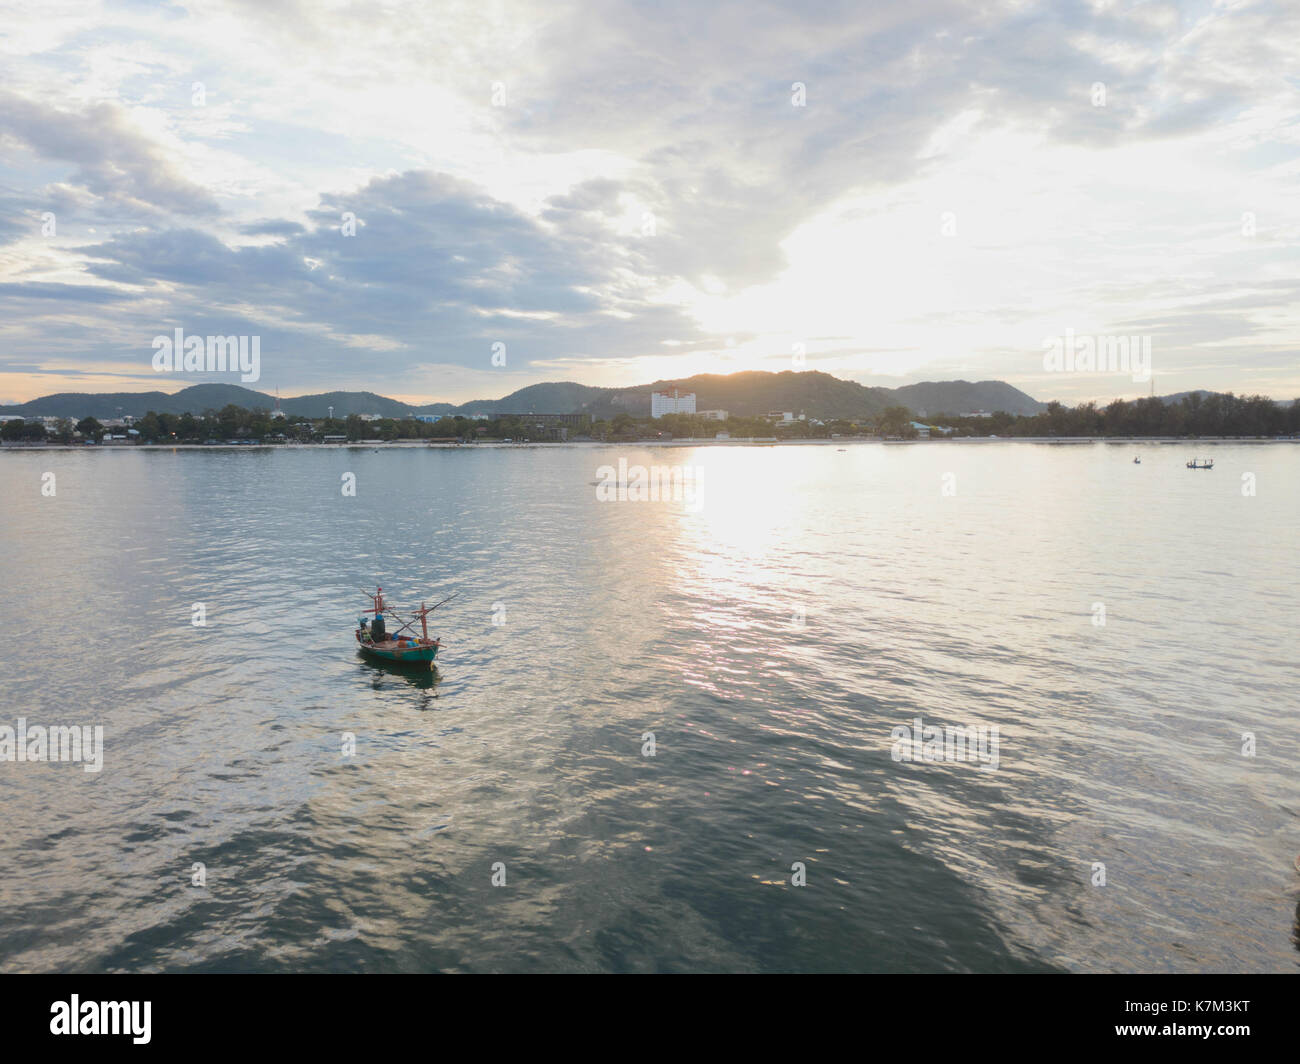 Drone Shot of a Thai Fishing Boat in Hua Hin - Stock Image